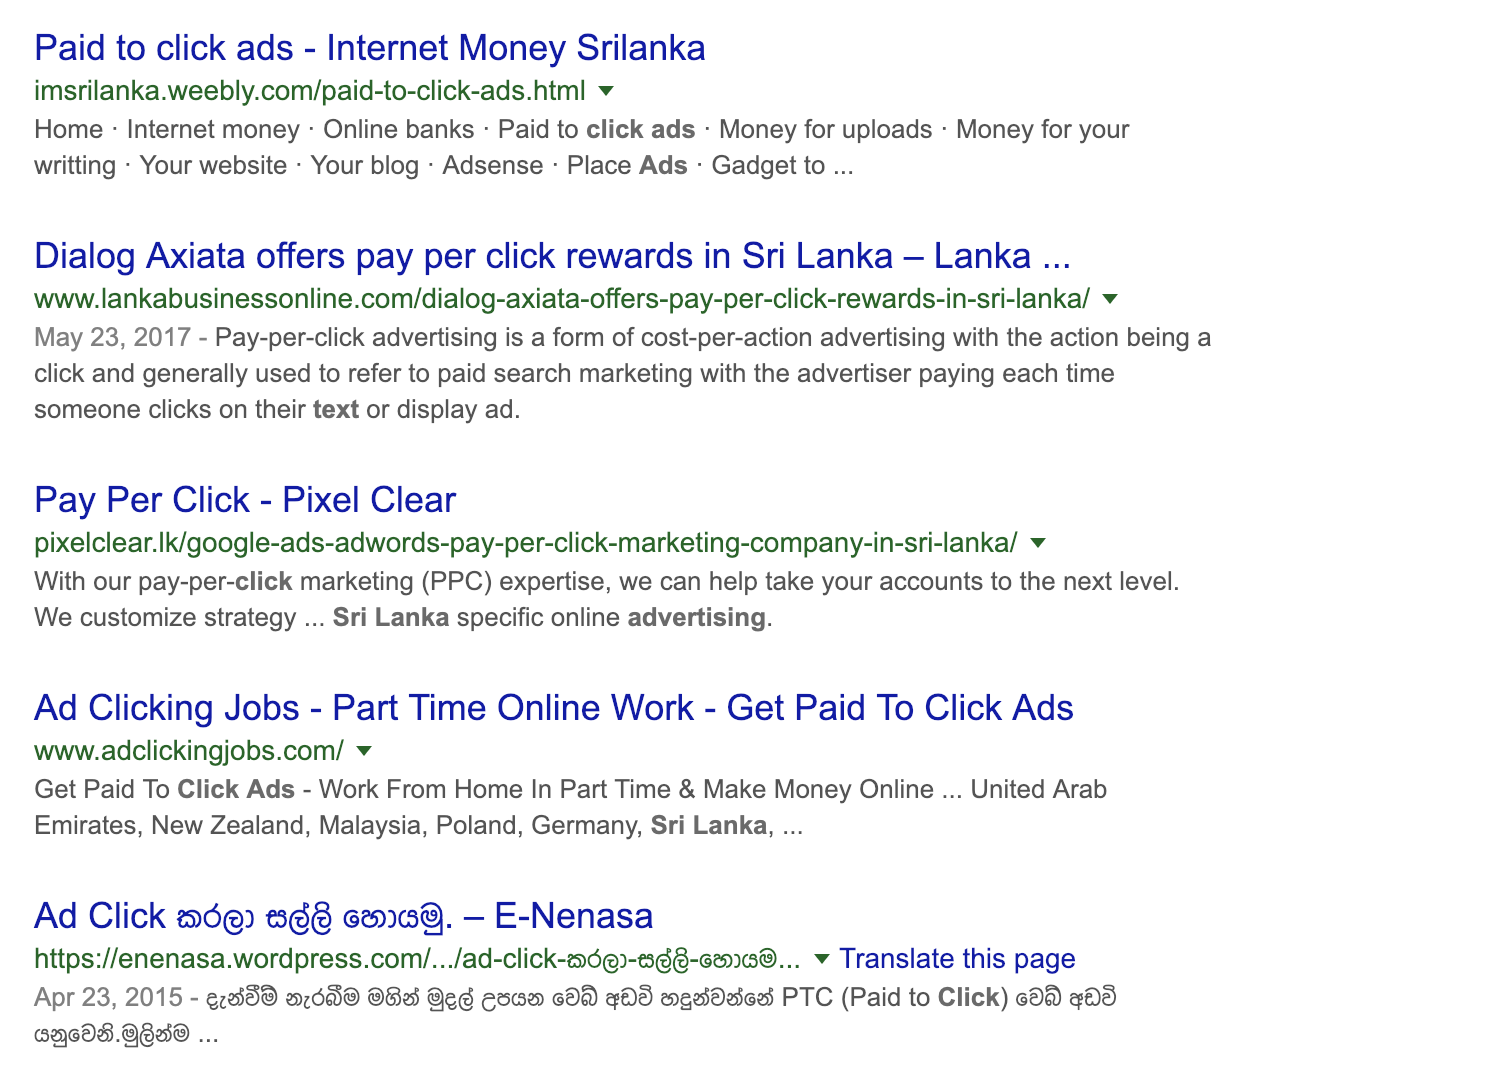 Paid-to-Click is a big industry in many countries. Now you know.